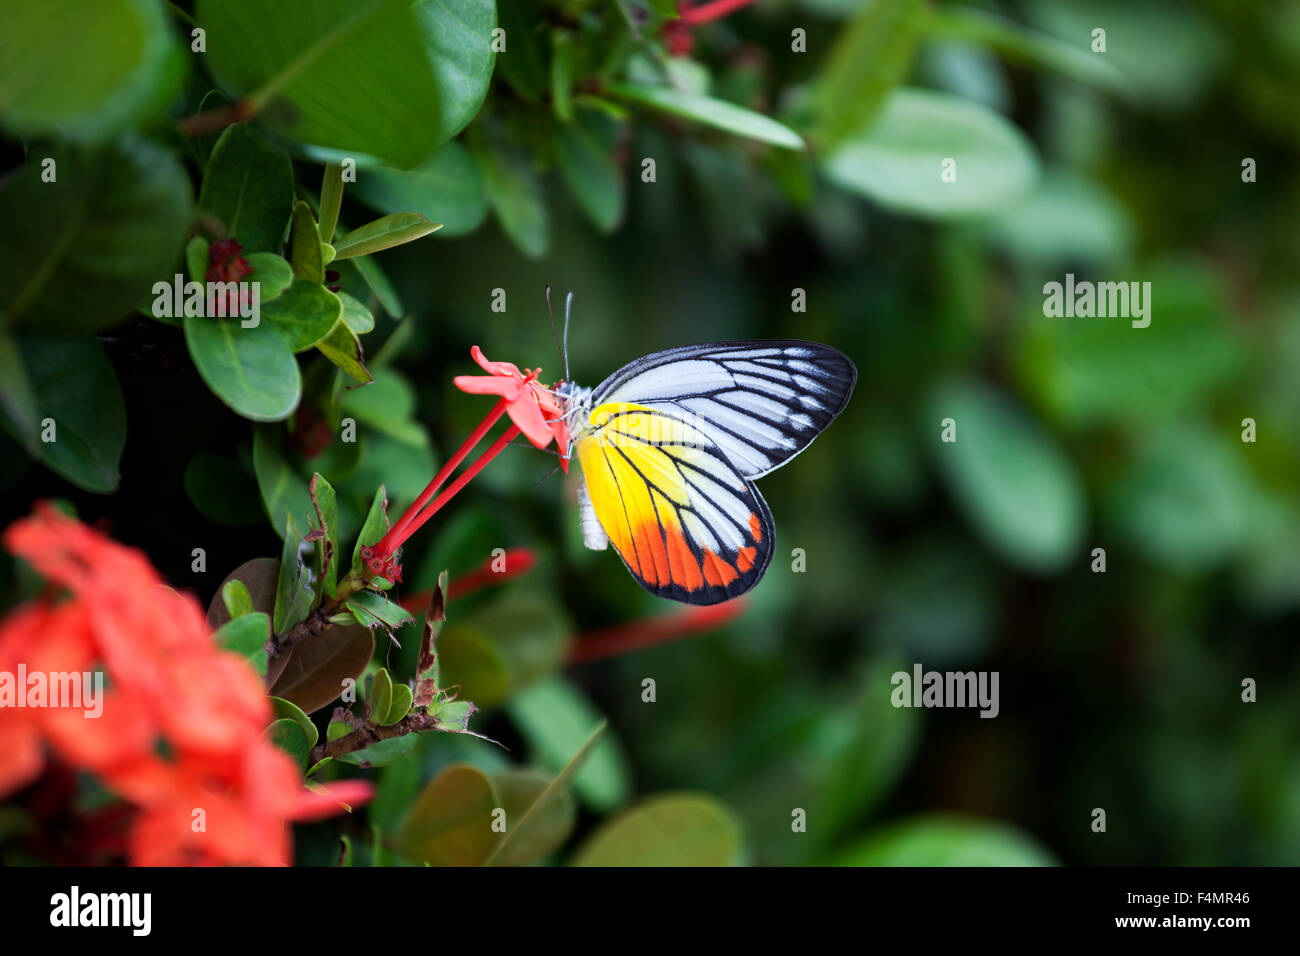 Butterlfy in the Gardens of Penang, Malaysia - Stock Image